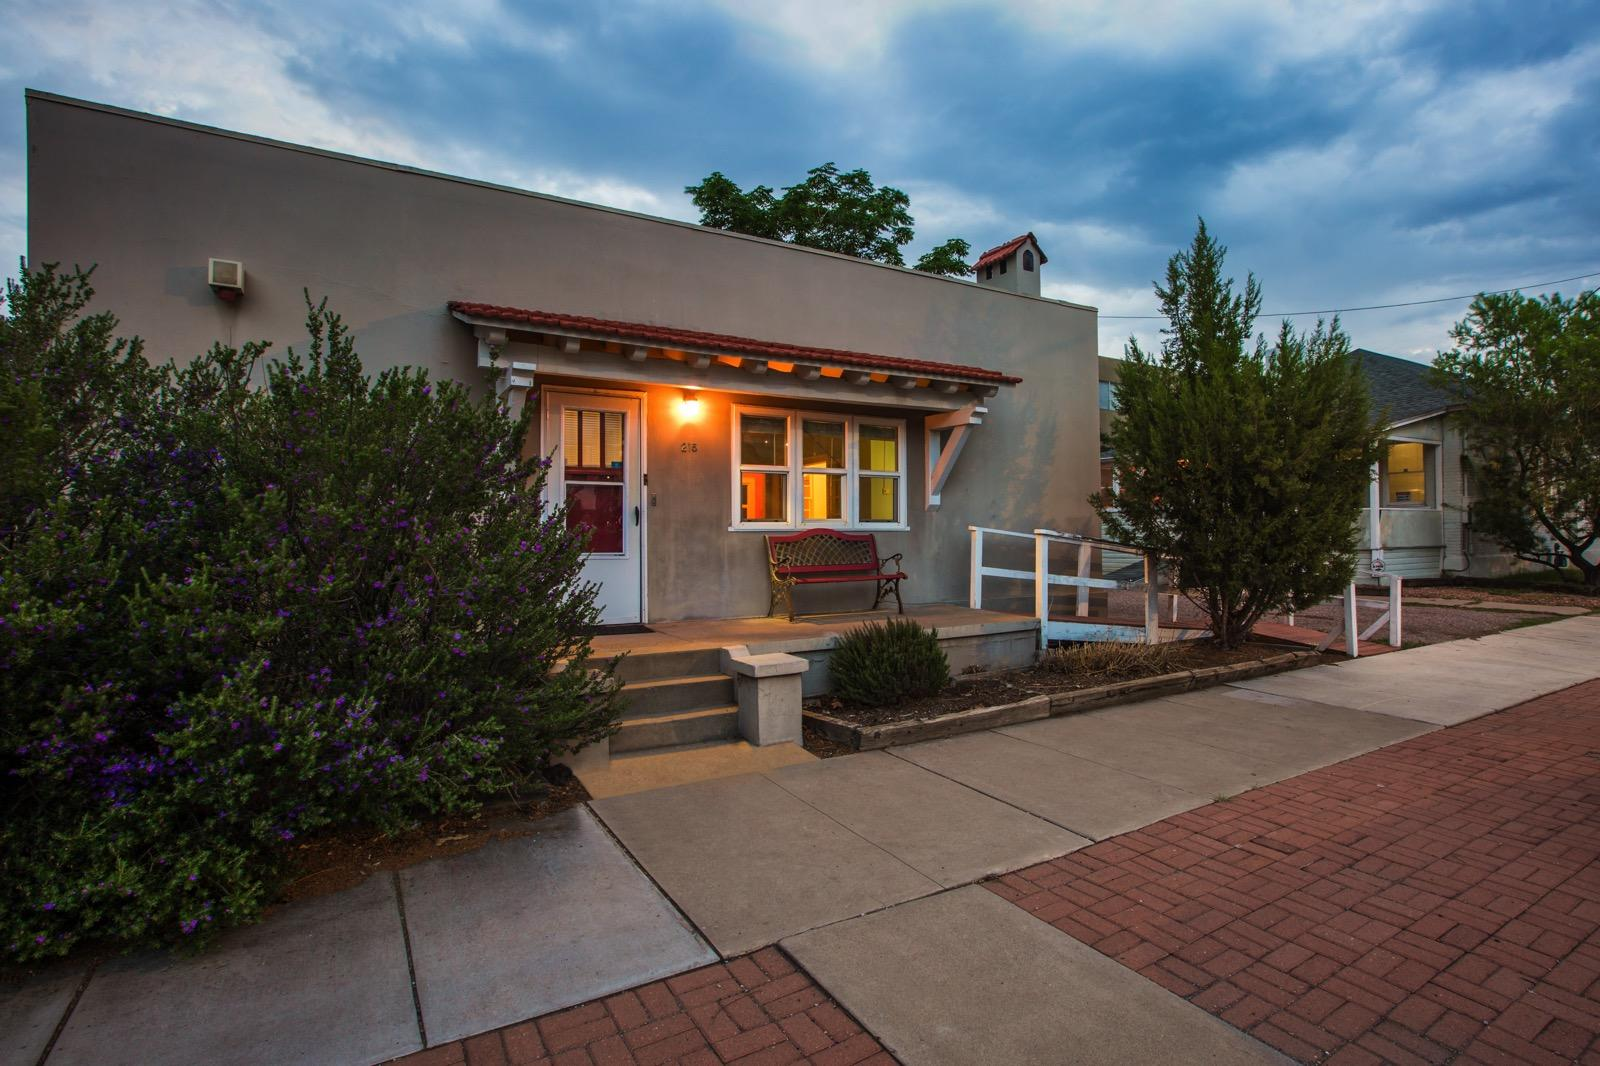 Critical Dates:Tour - 6/1 at noon (ask your agent on how to RSVP)Offer deadline - noon - 6/3Located on the western edge of Downtown Albuquerque's Central Business District, NM Apartment Advisors is excited to bring to market these two side by side residences on the southwest corner of 8th and Gold.Hardwood floors, craftsman details, abundance of natural lighting and off street parking are all offered at these properties. Zoning allows you to live, work or live/work onsite.800 Gold SW was recently used as an attorney's office and contains a conference room three large offices, a sunroom, large porch along with a 3/4 bathroom - virtual tour this unit at www.nmapartment.com/gold3d215 8th SW is currently rented as a single family residence with the property being available